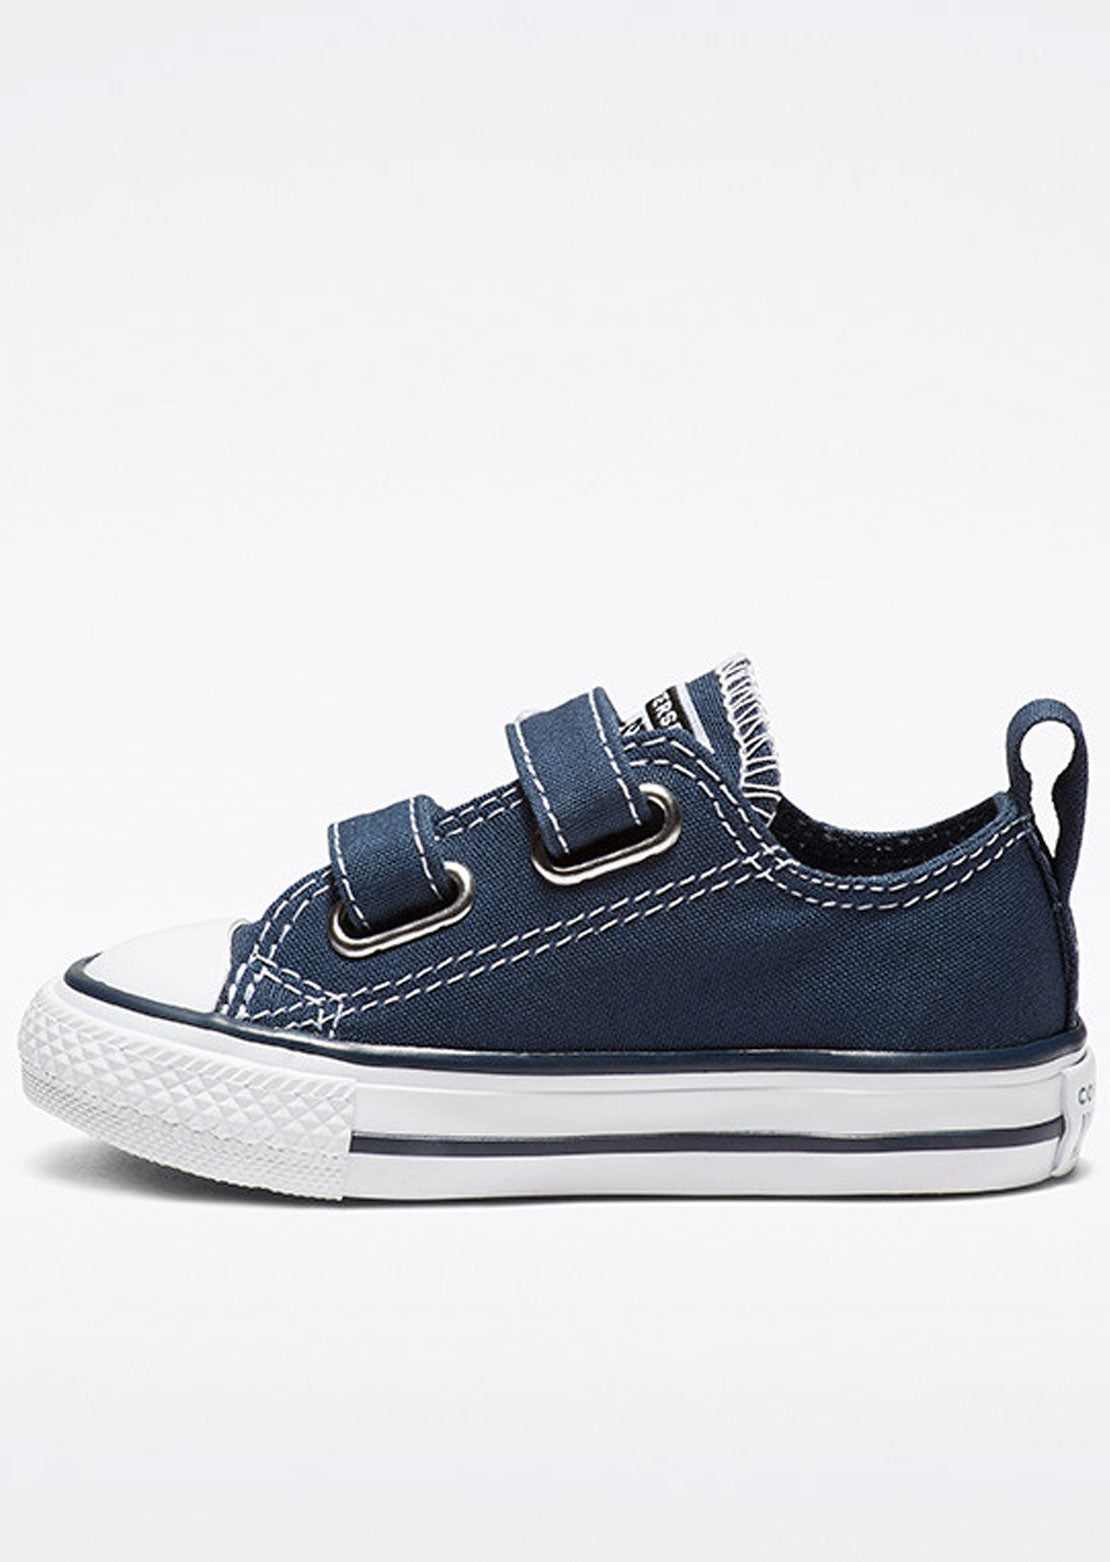 Converse Junior Toddler Chuck Taylor All Star 2V Shoes Athletic Navy/White